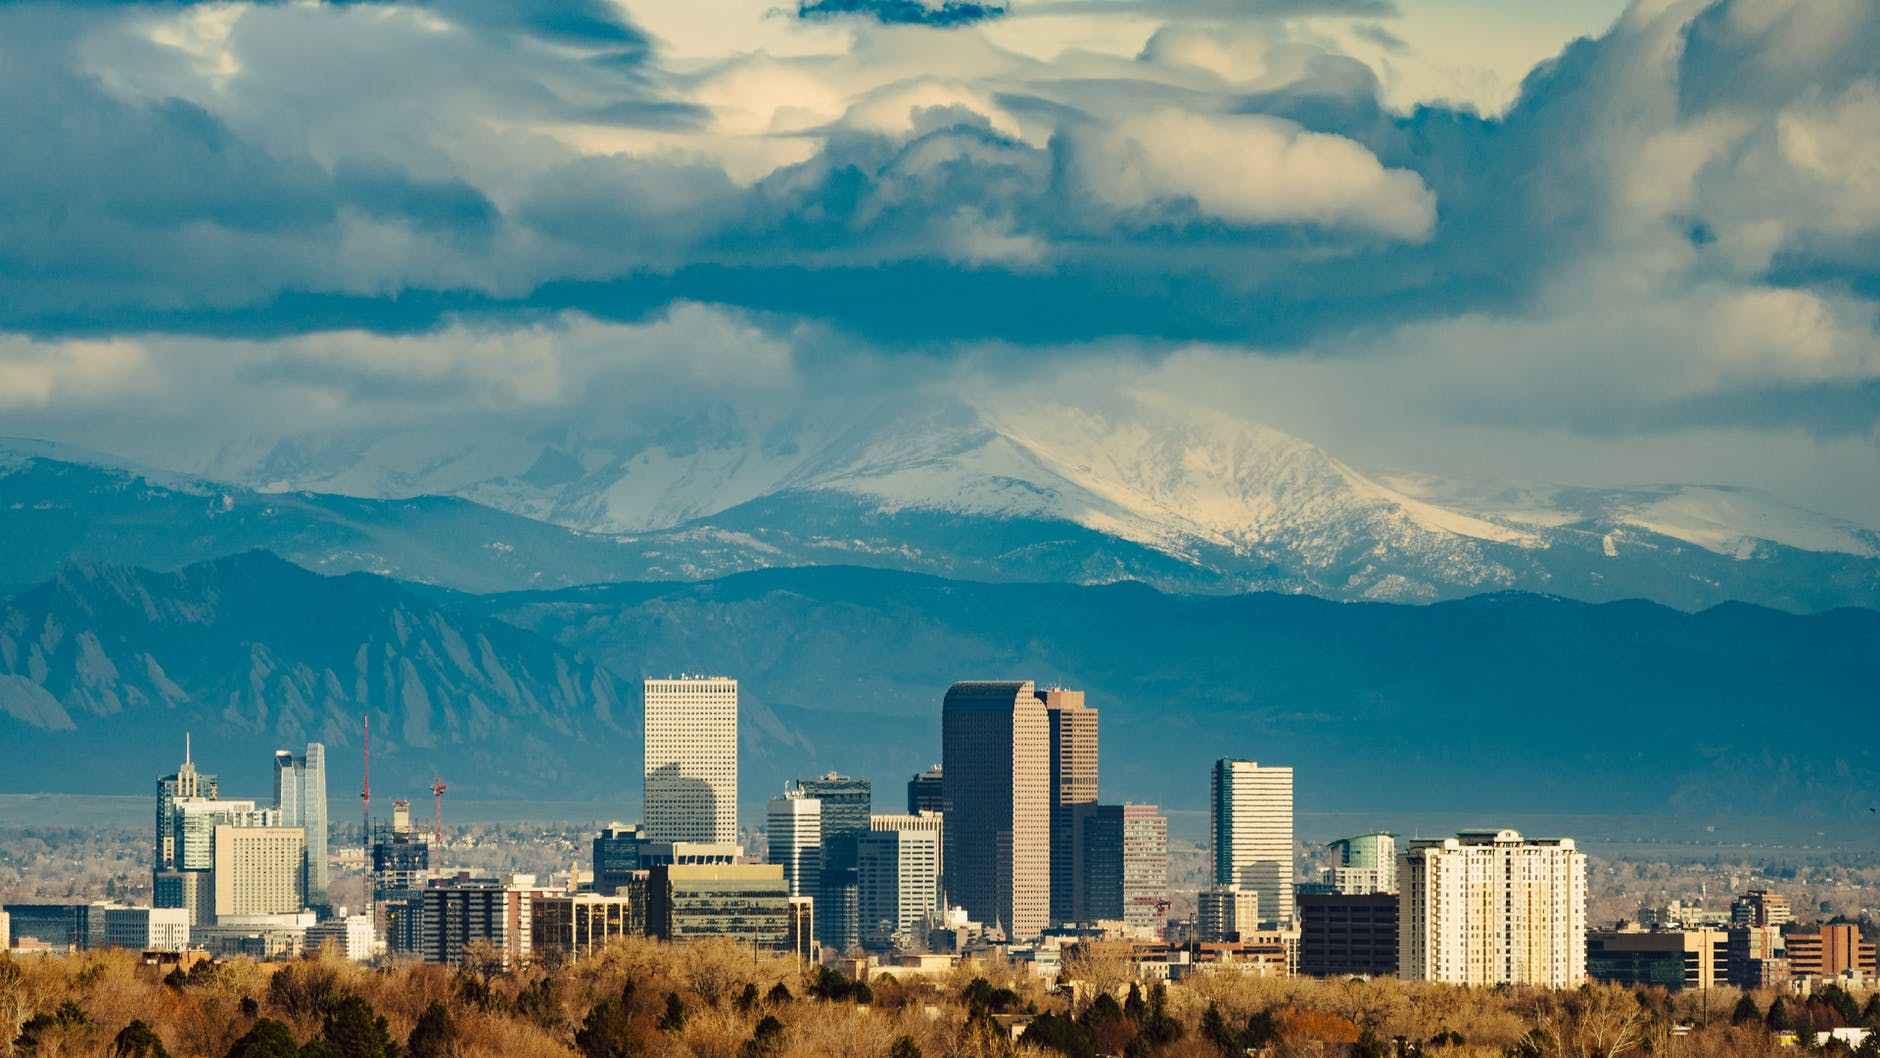 How to Register My Business in Colorado